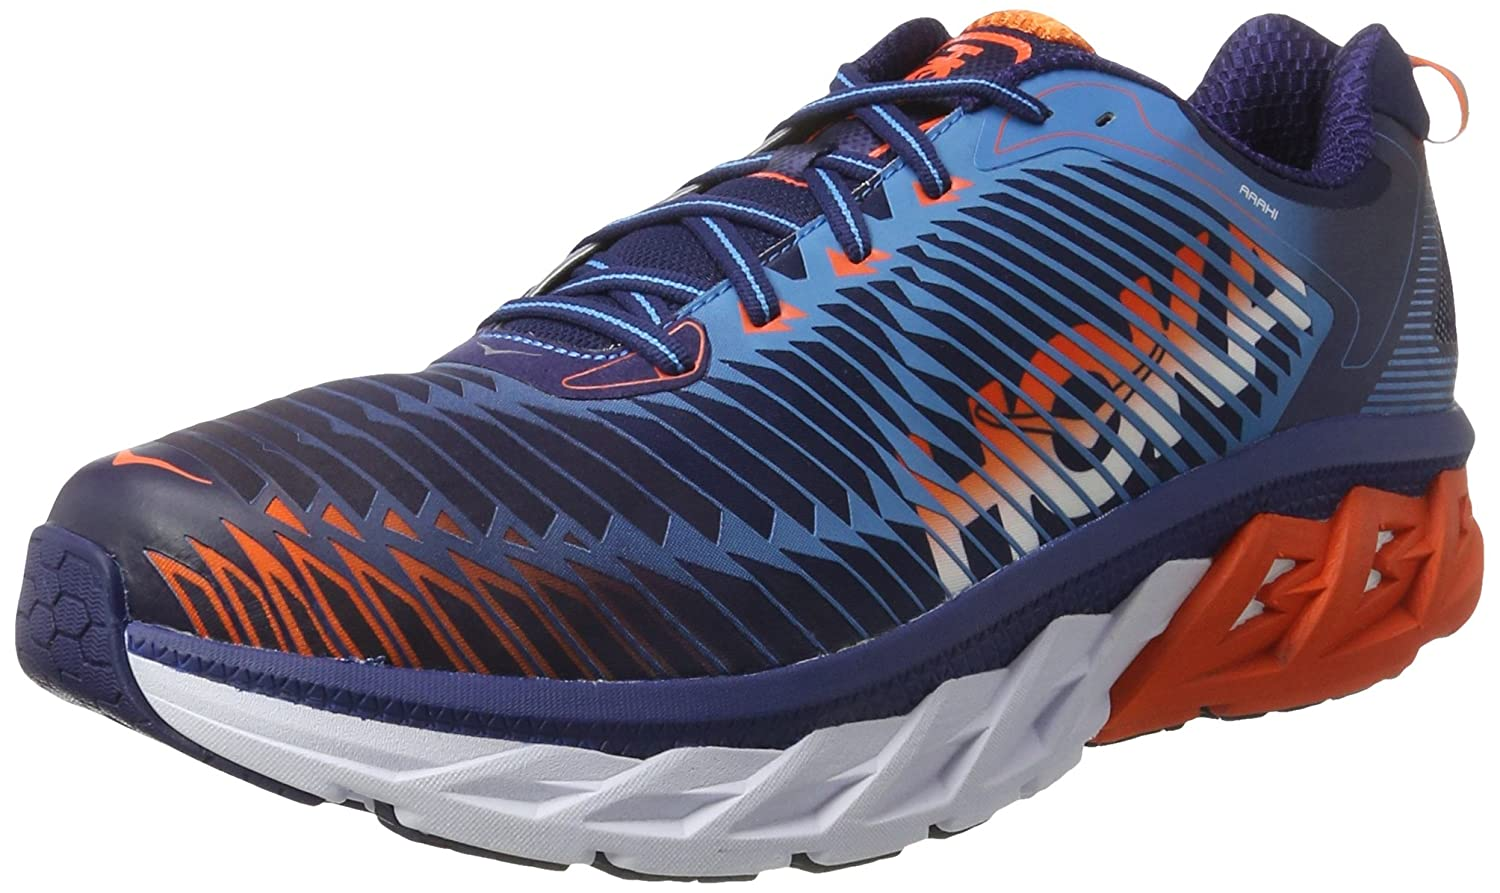 HOKA ONE ONE Mens Arahi Running Shoe B01H6AY2U0 10 D(M) US|Medieval Blue/Red Orange